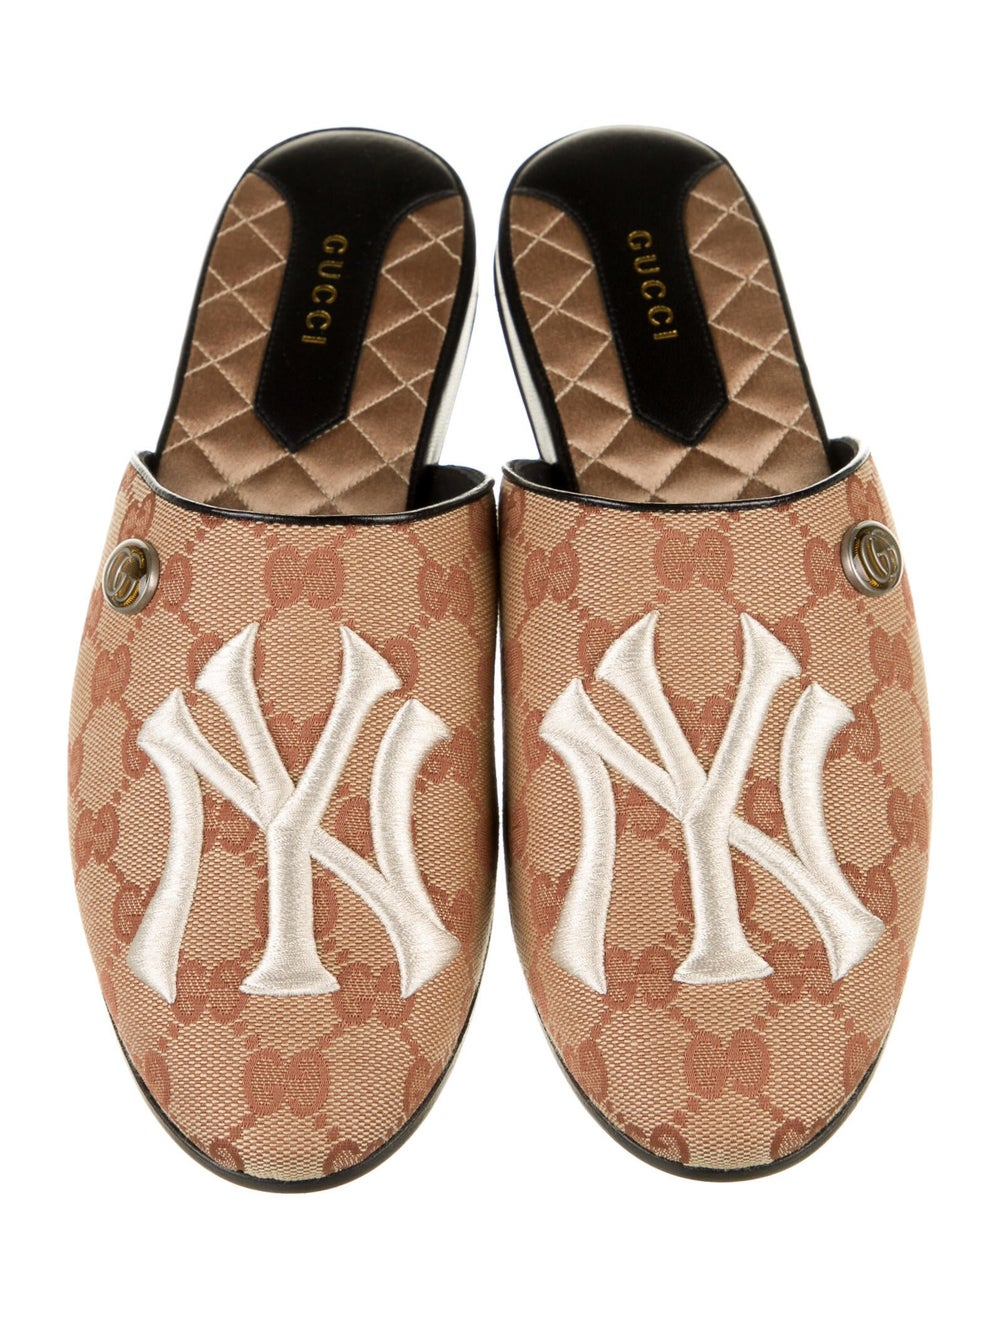 Gucci NY Yankees GG Canvas Mules w/ Tags - image 3